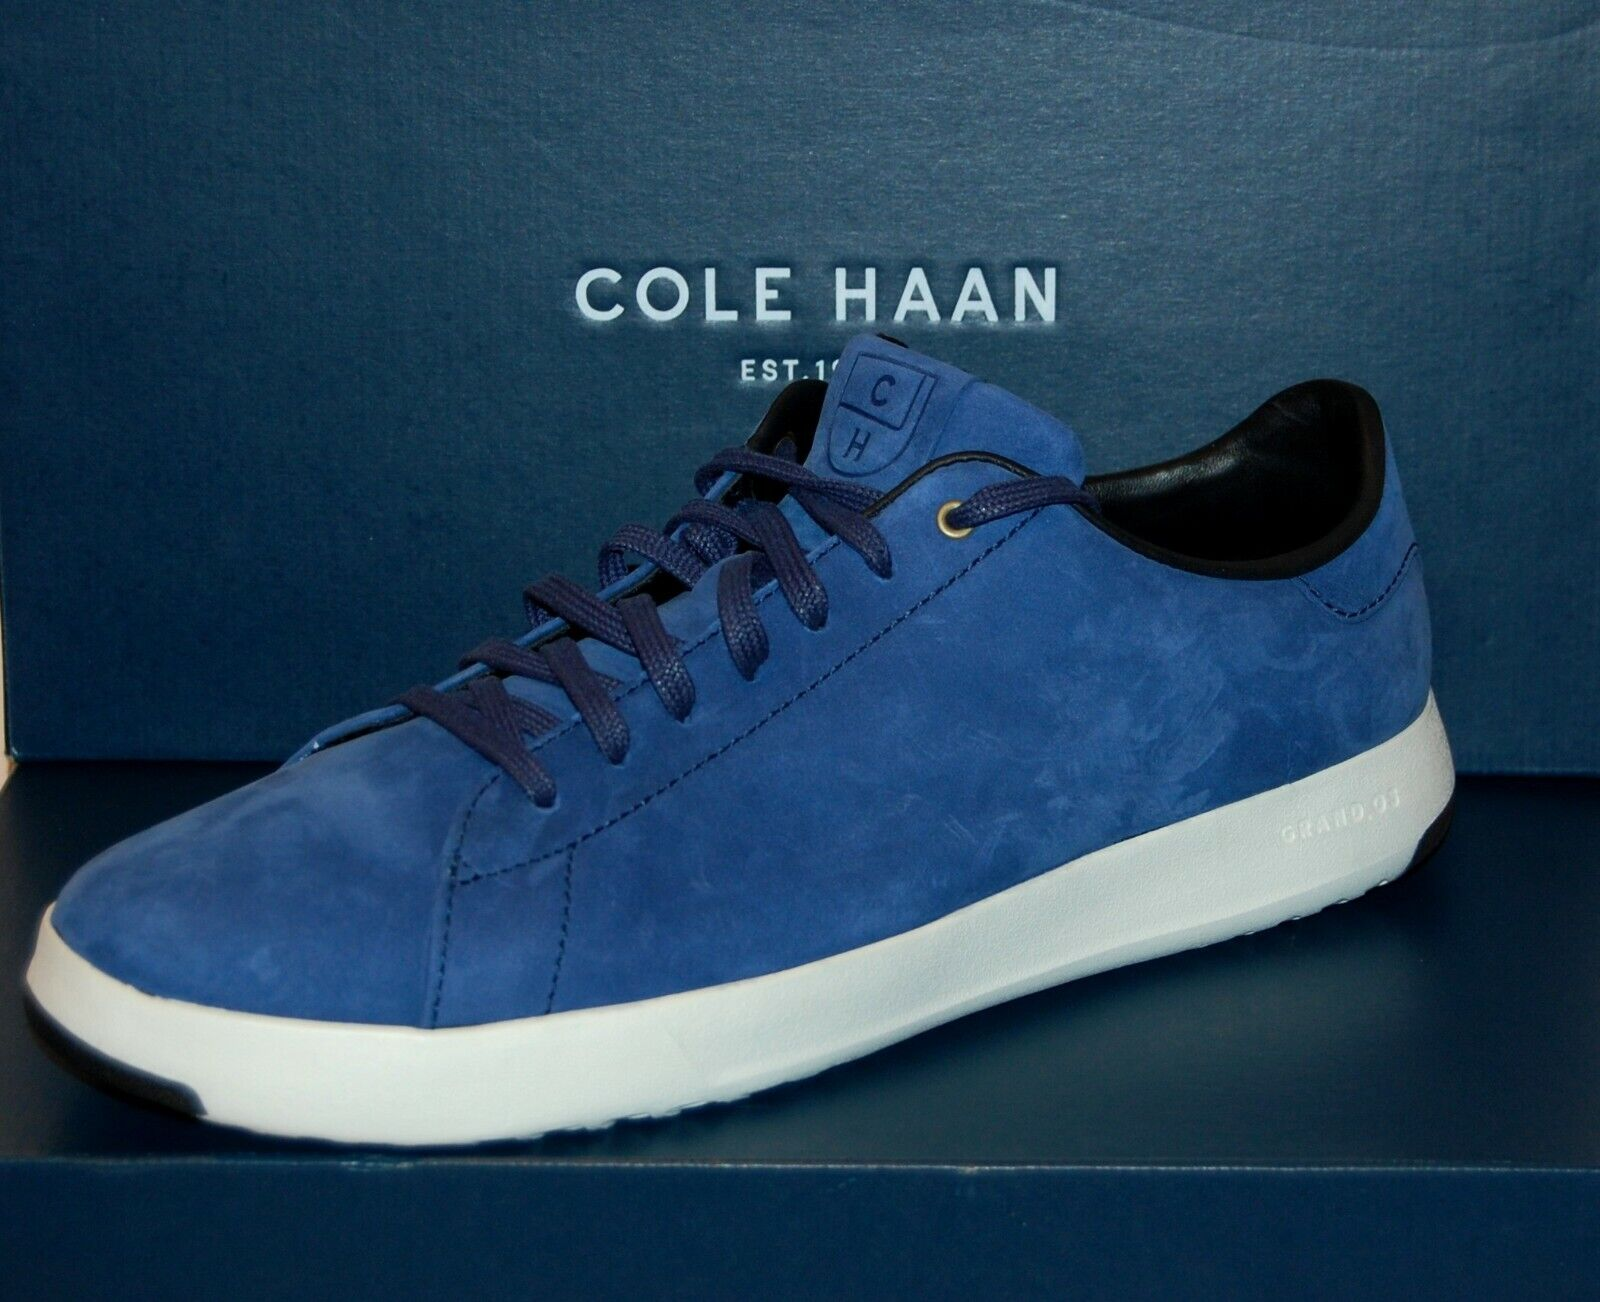 Cole Haan Men's bluee White Sole Rainstorm Nubuc Lace Fashion Sneakers Sz 12